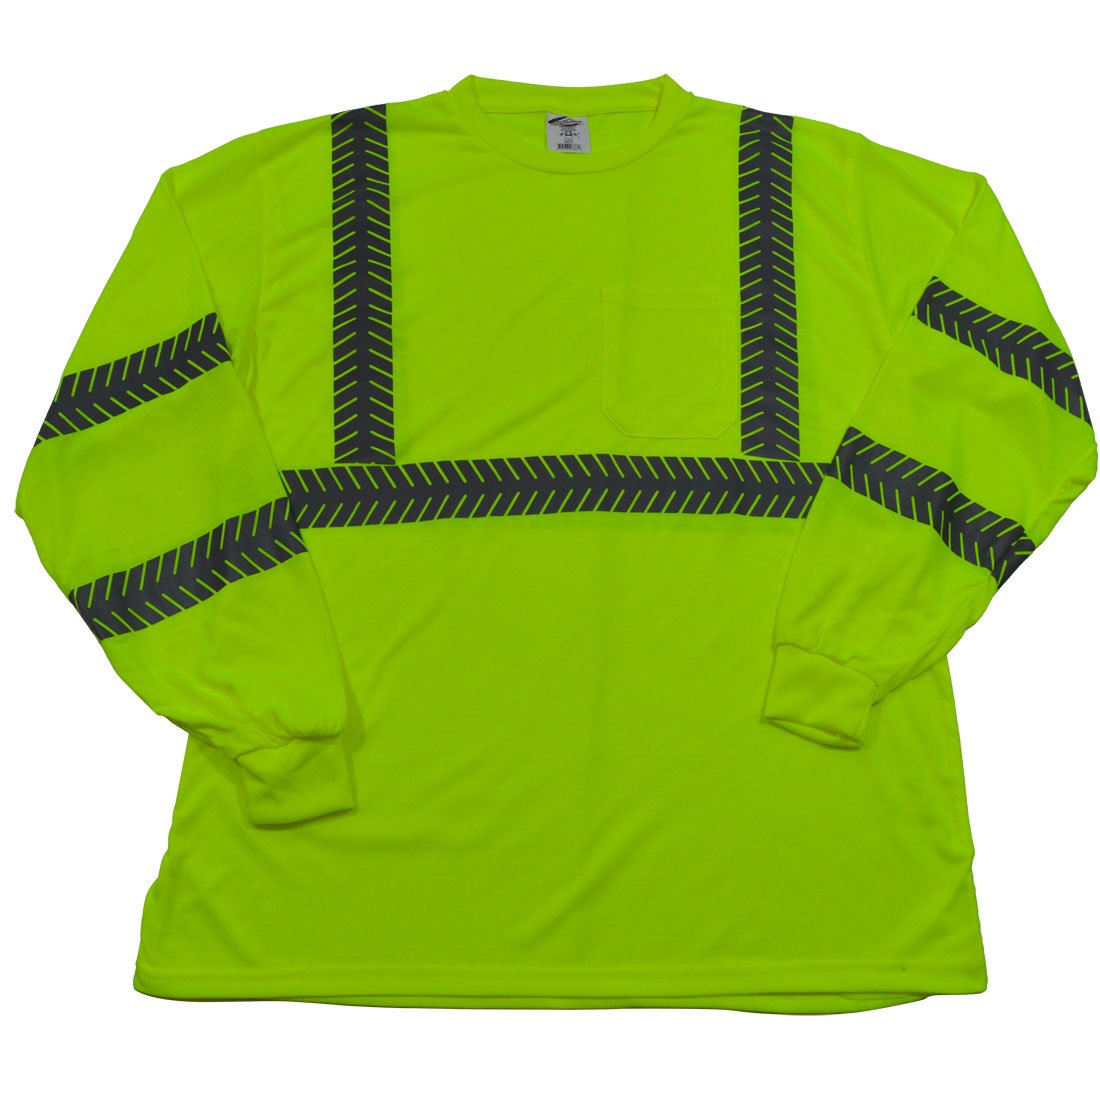 Petra Roc L JTSL3-XL ANSI Class 3 High-Vis Safety T-Shirt Long Sleeve, Jersey Knit with Segmented Reflective Tape and One Chest Pocket, XL, Lime